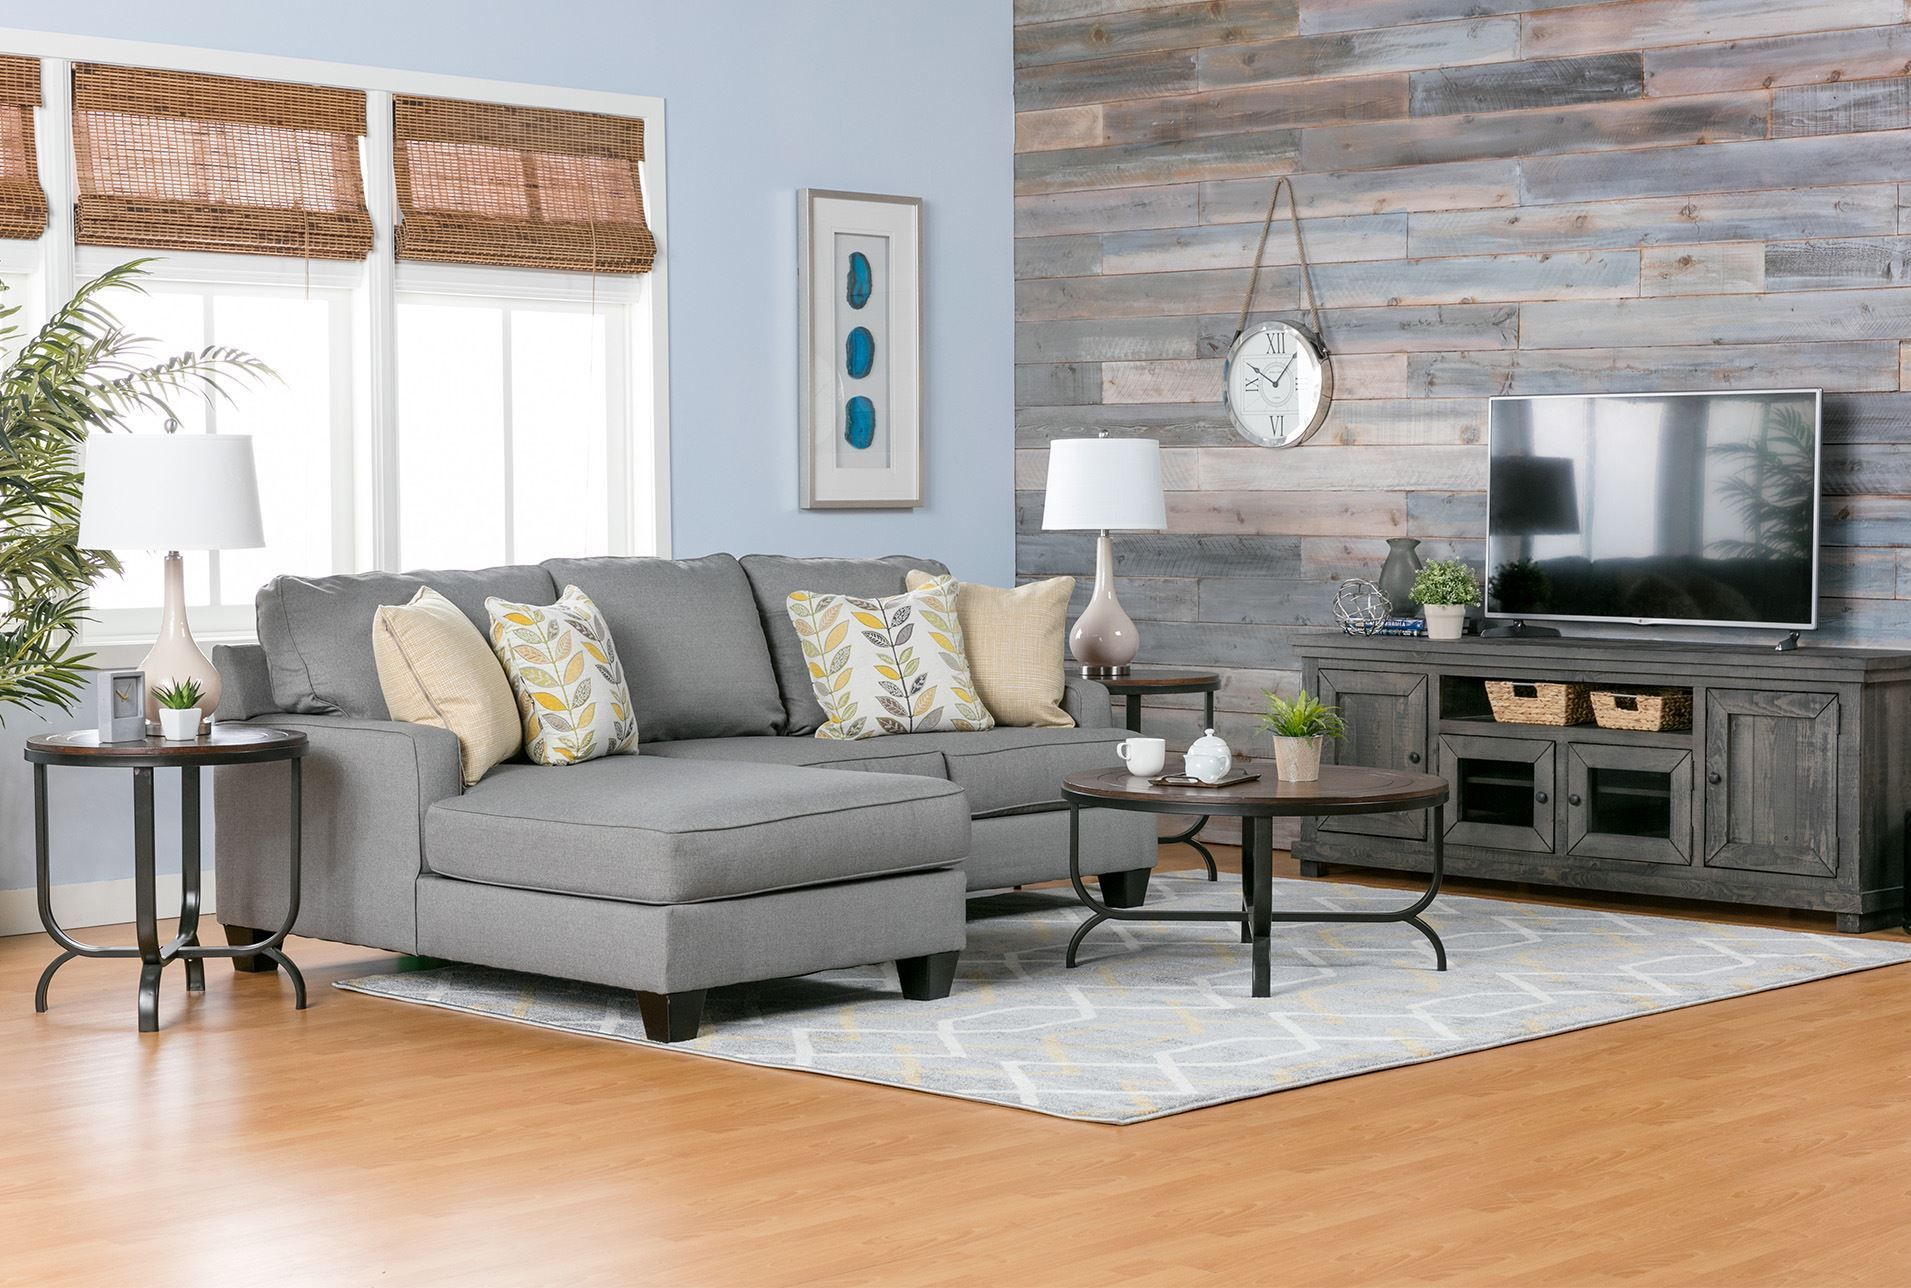 Sinclair Grey 74 Inch Tv Stand | Family Room | Pinterest | Living Inside Sinclair Grey 74 Inch Tv Stands (View 23 of 30)